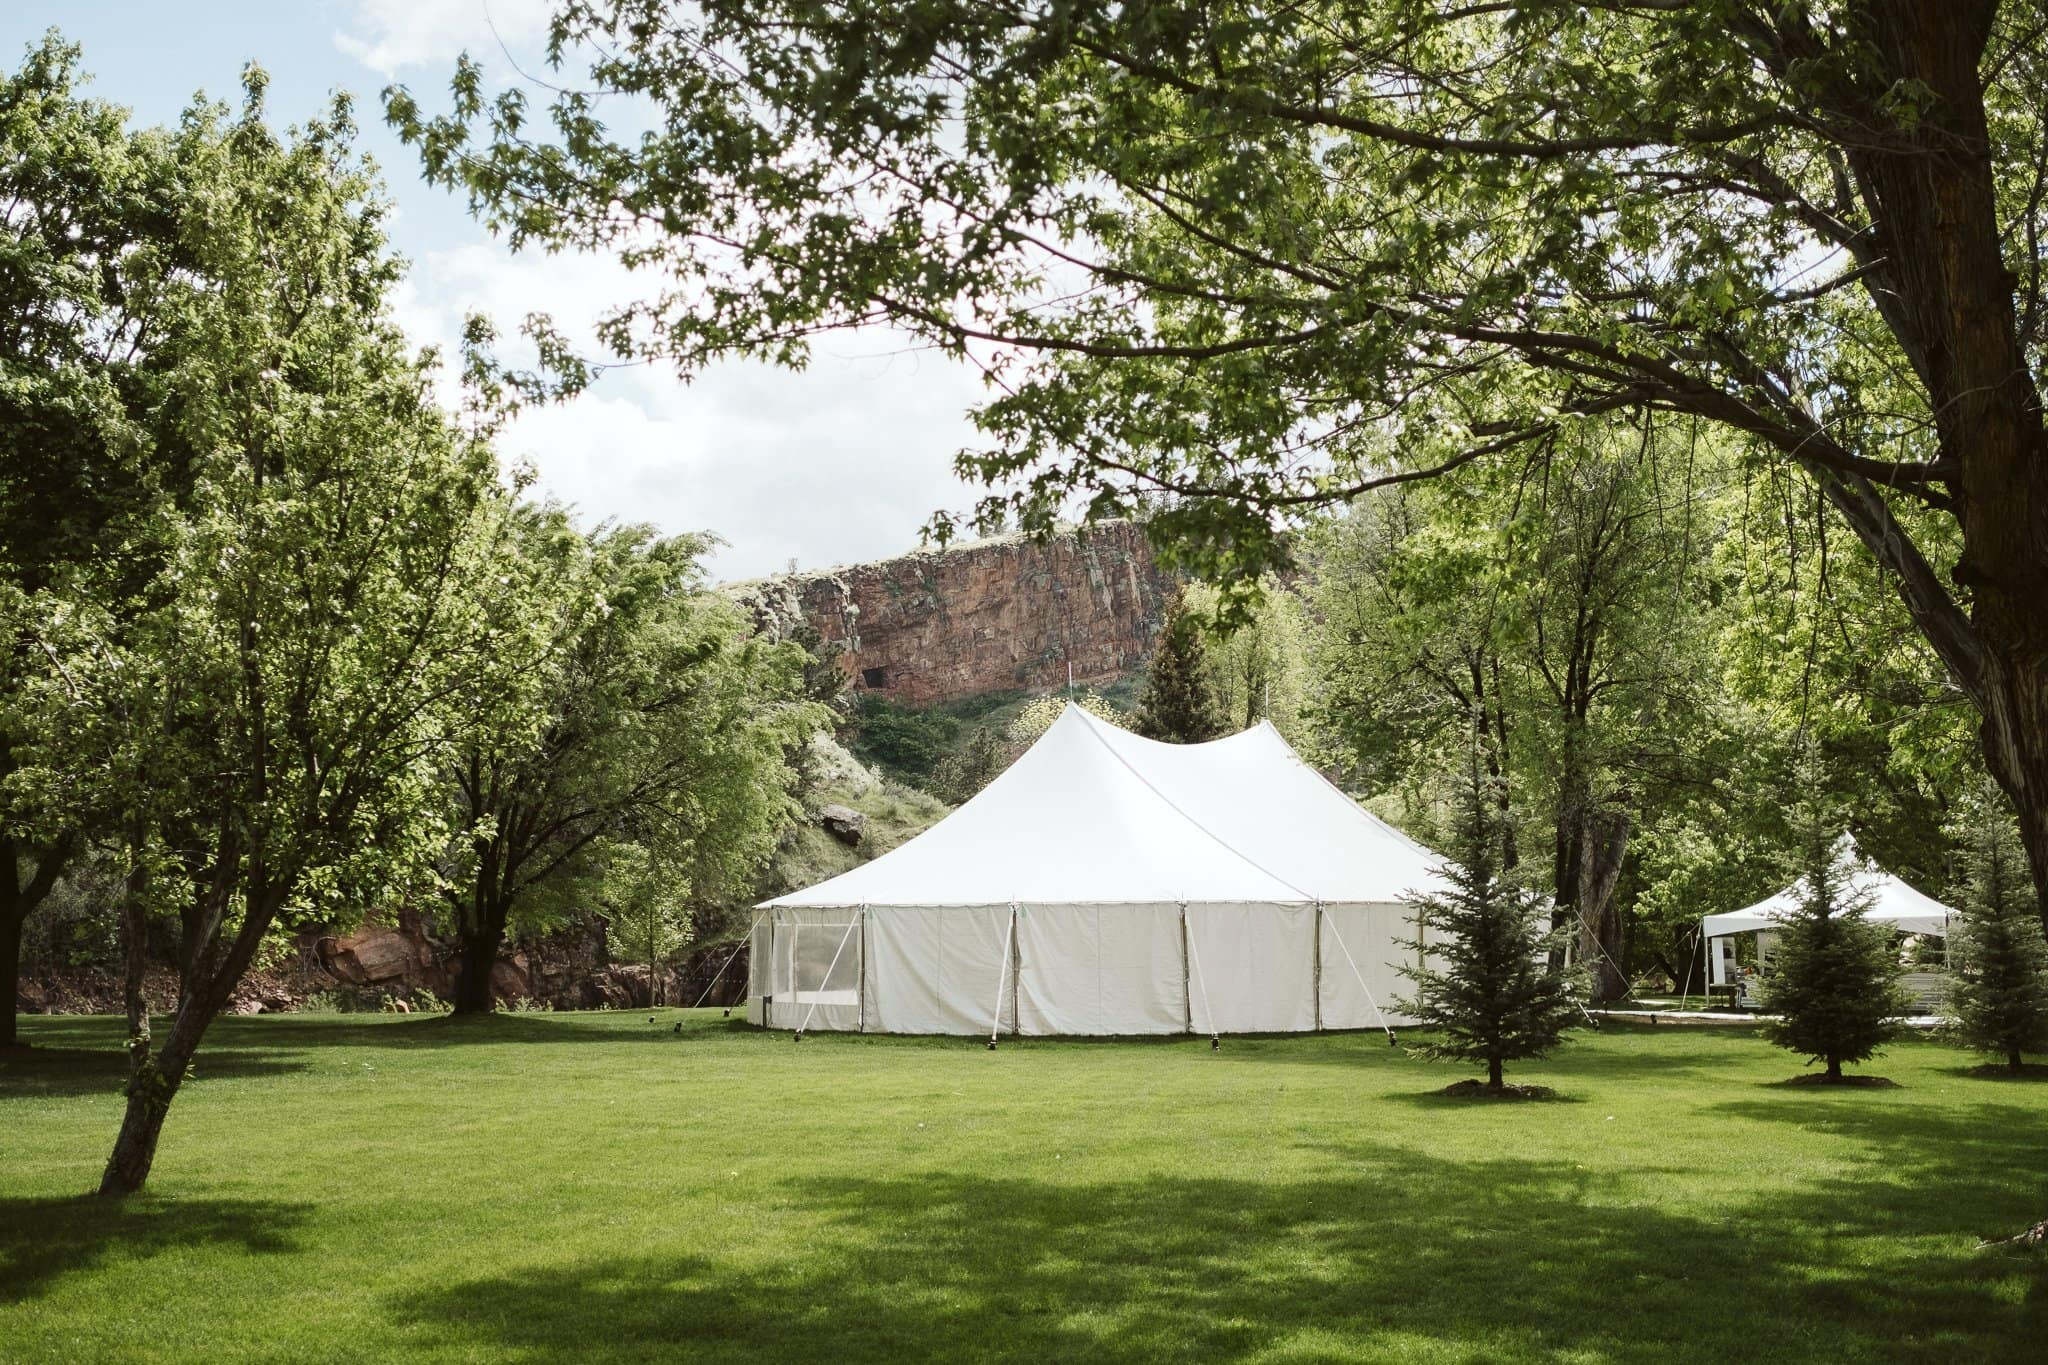 riverbend-wedding-venue-lyons-8